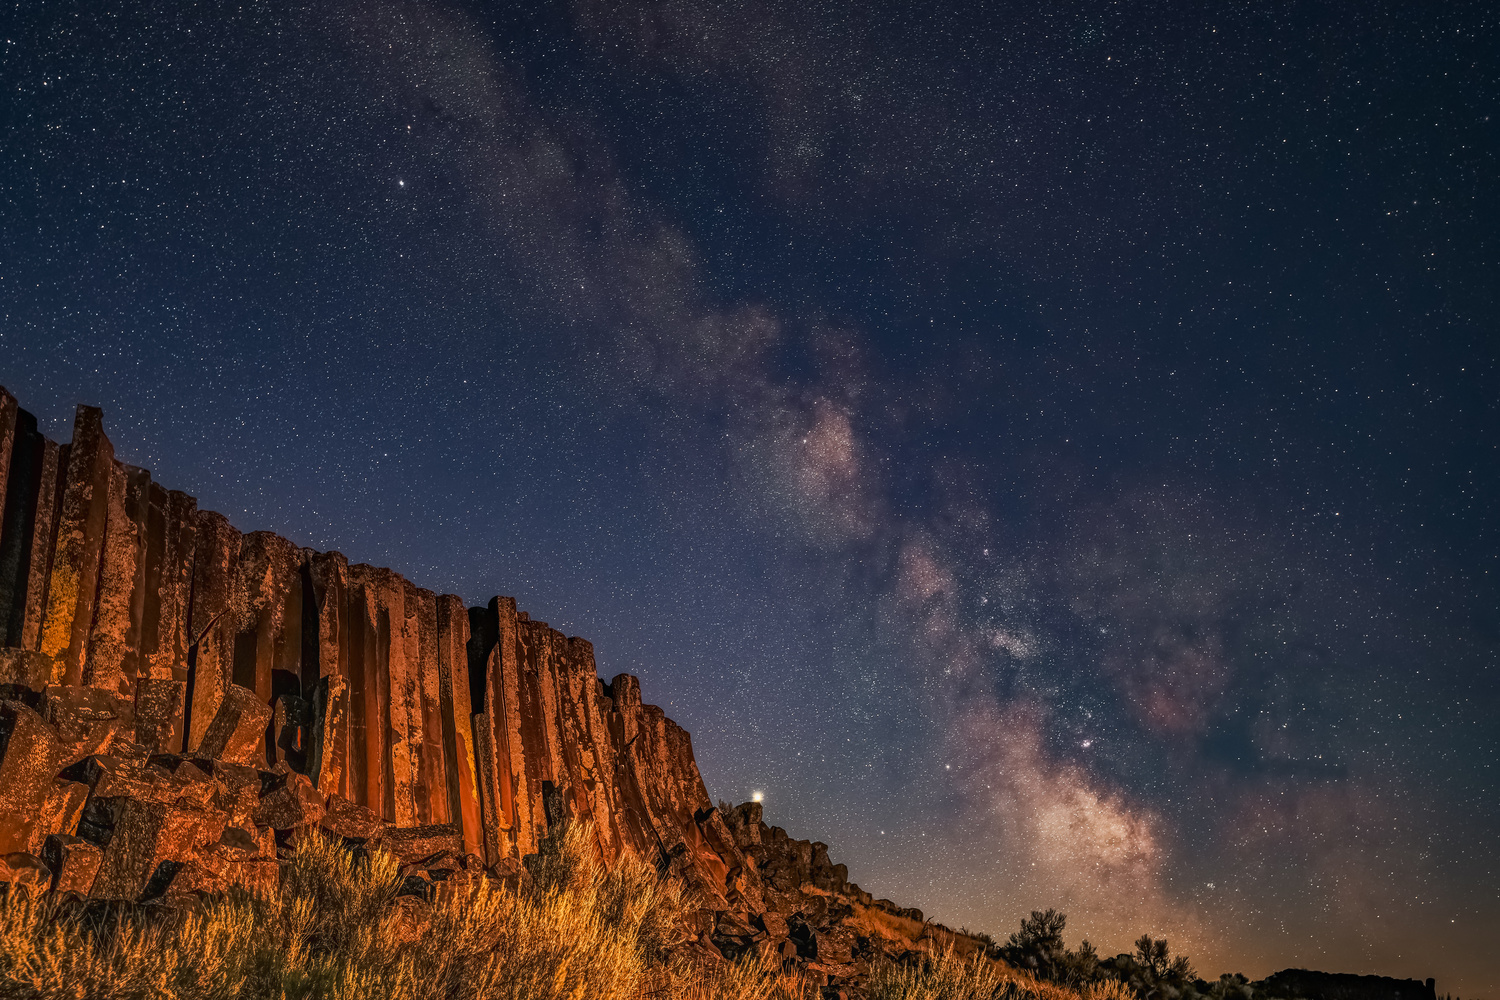 Basalt Columns at Night by David Hutson